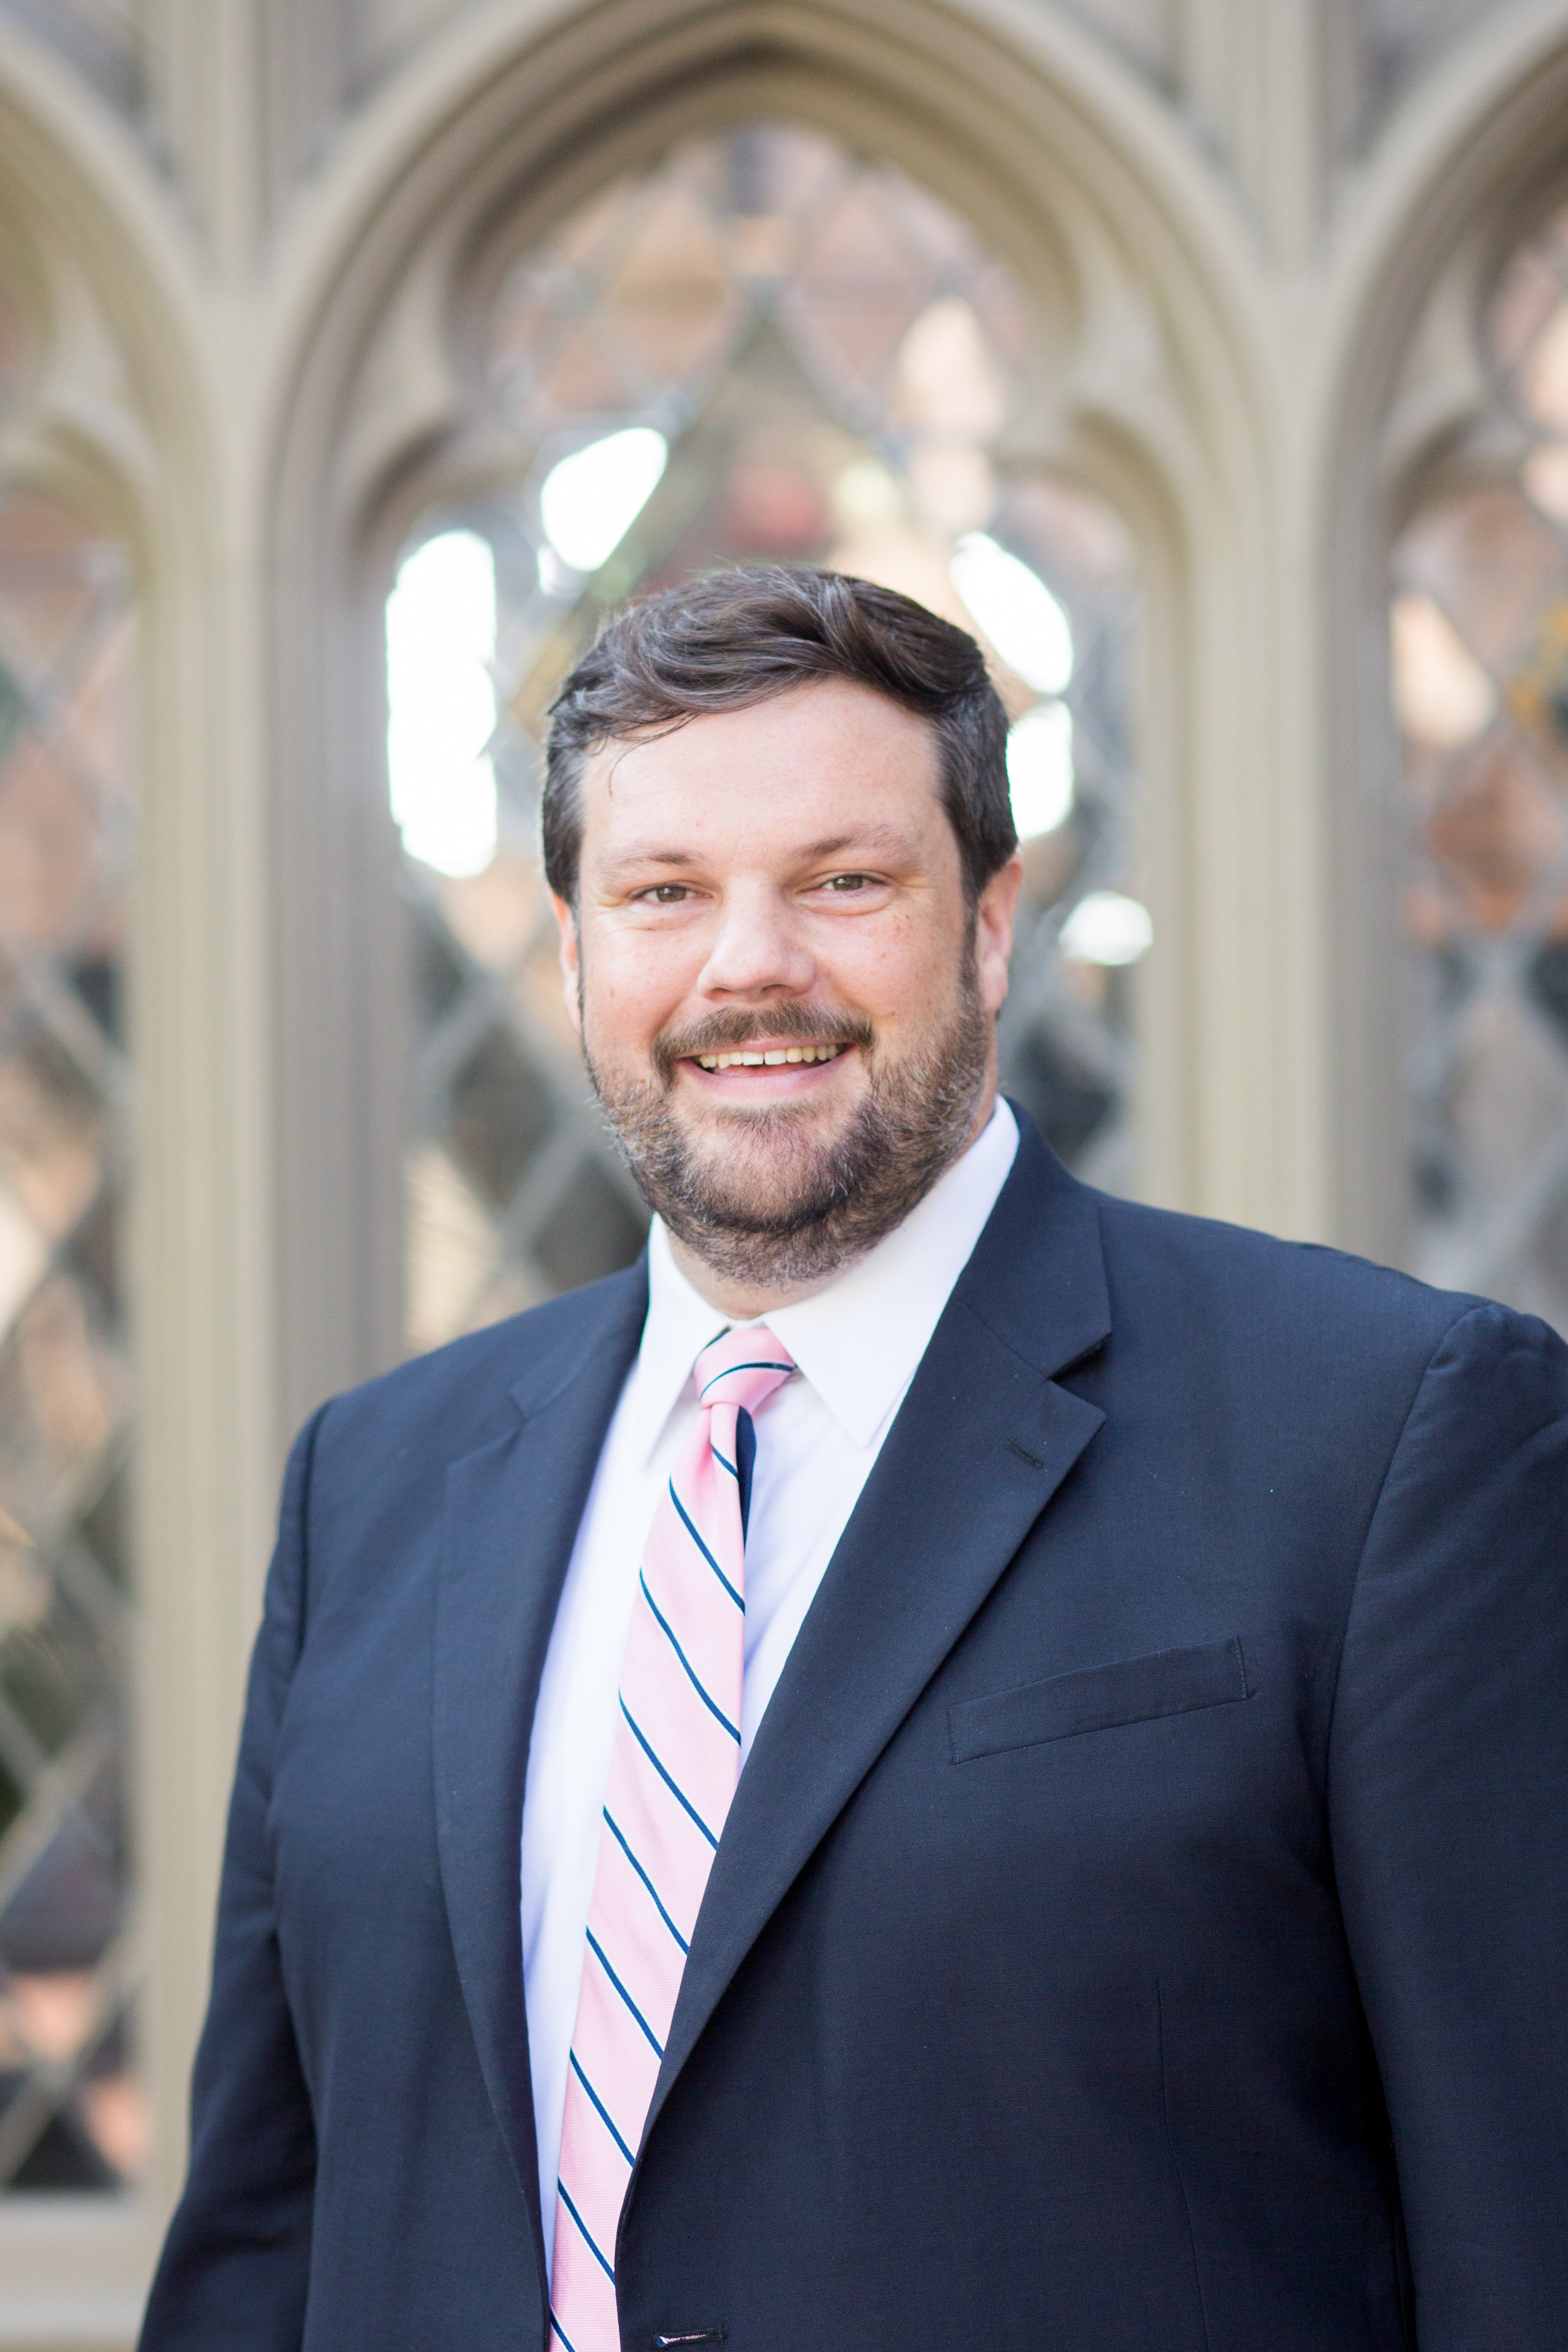 Gene Campbell has been appointed Browning's new Head of Upper School and will begin his term on July 1, 2018.